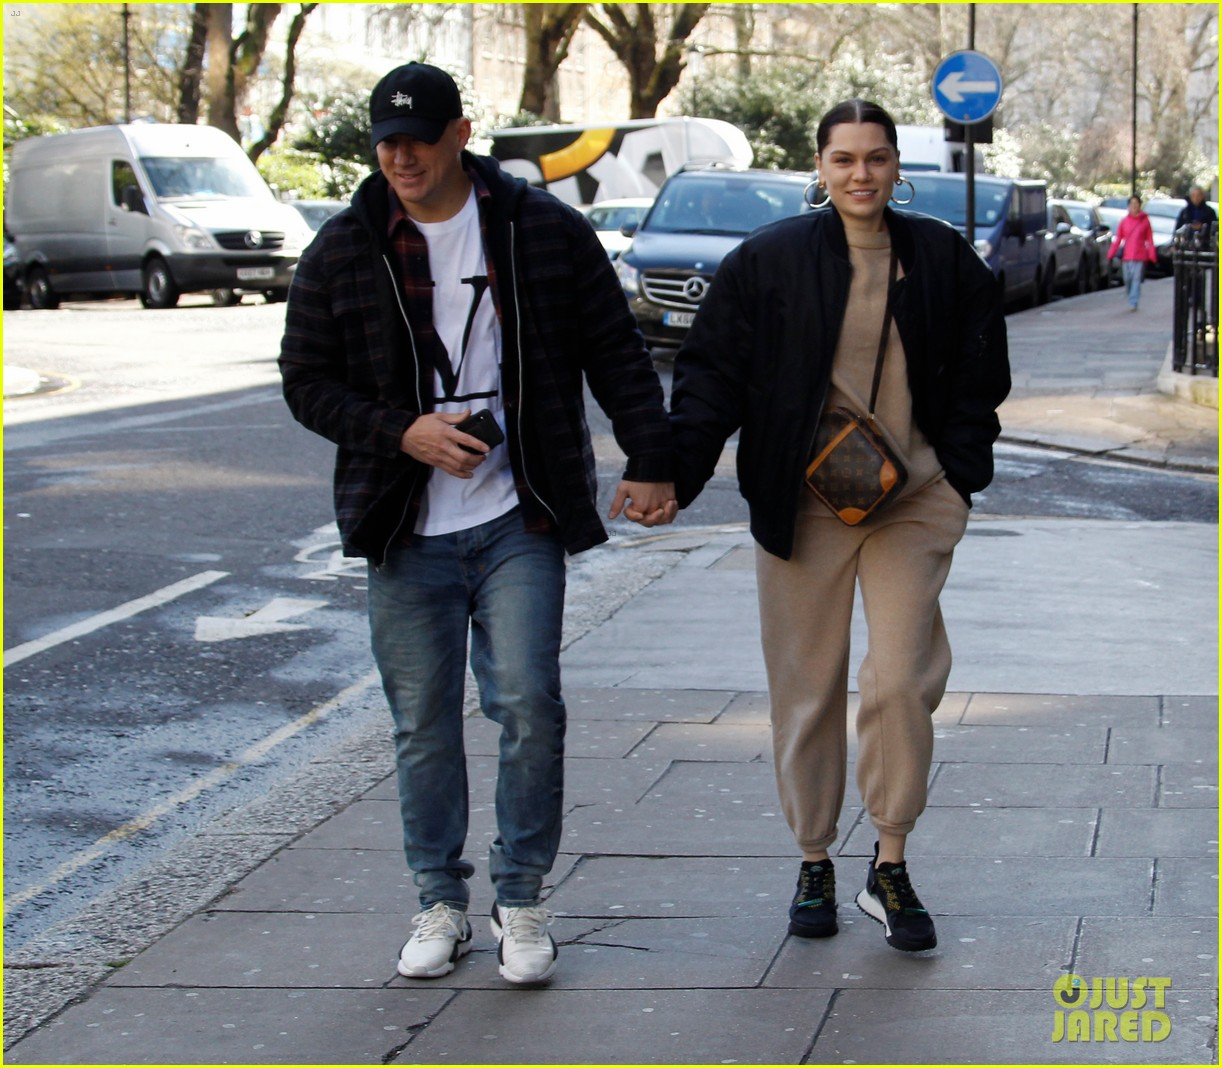 channing tatum jessie j hold hands london 034256685